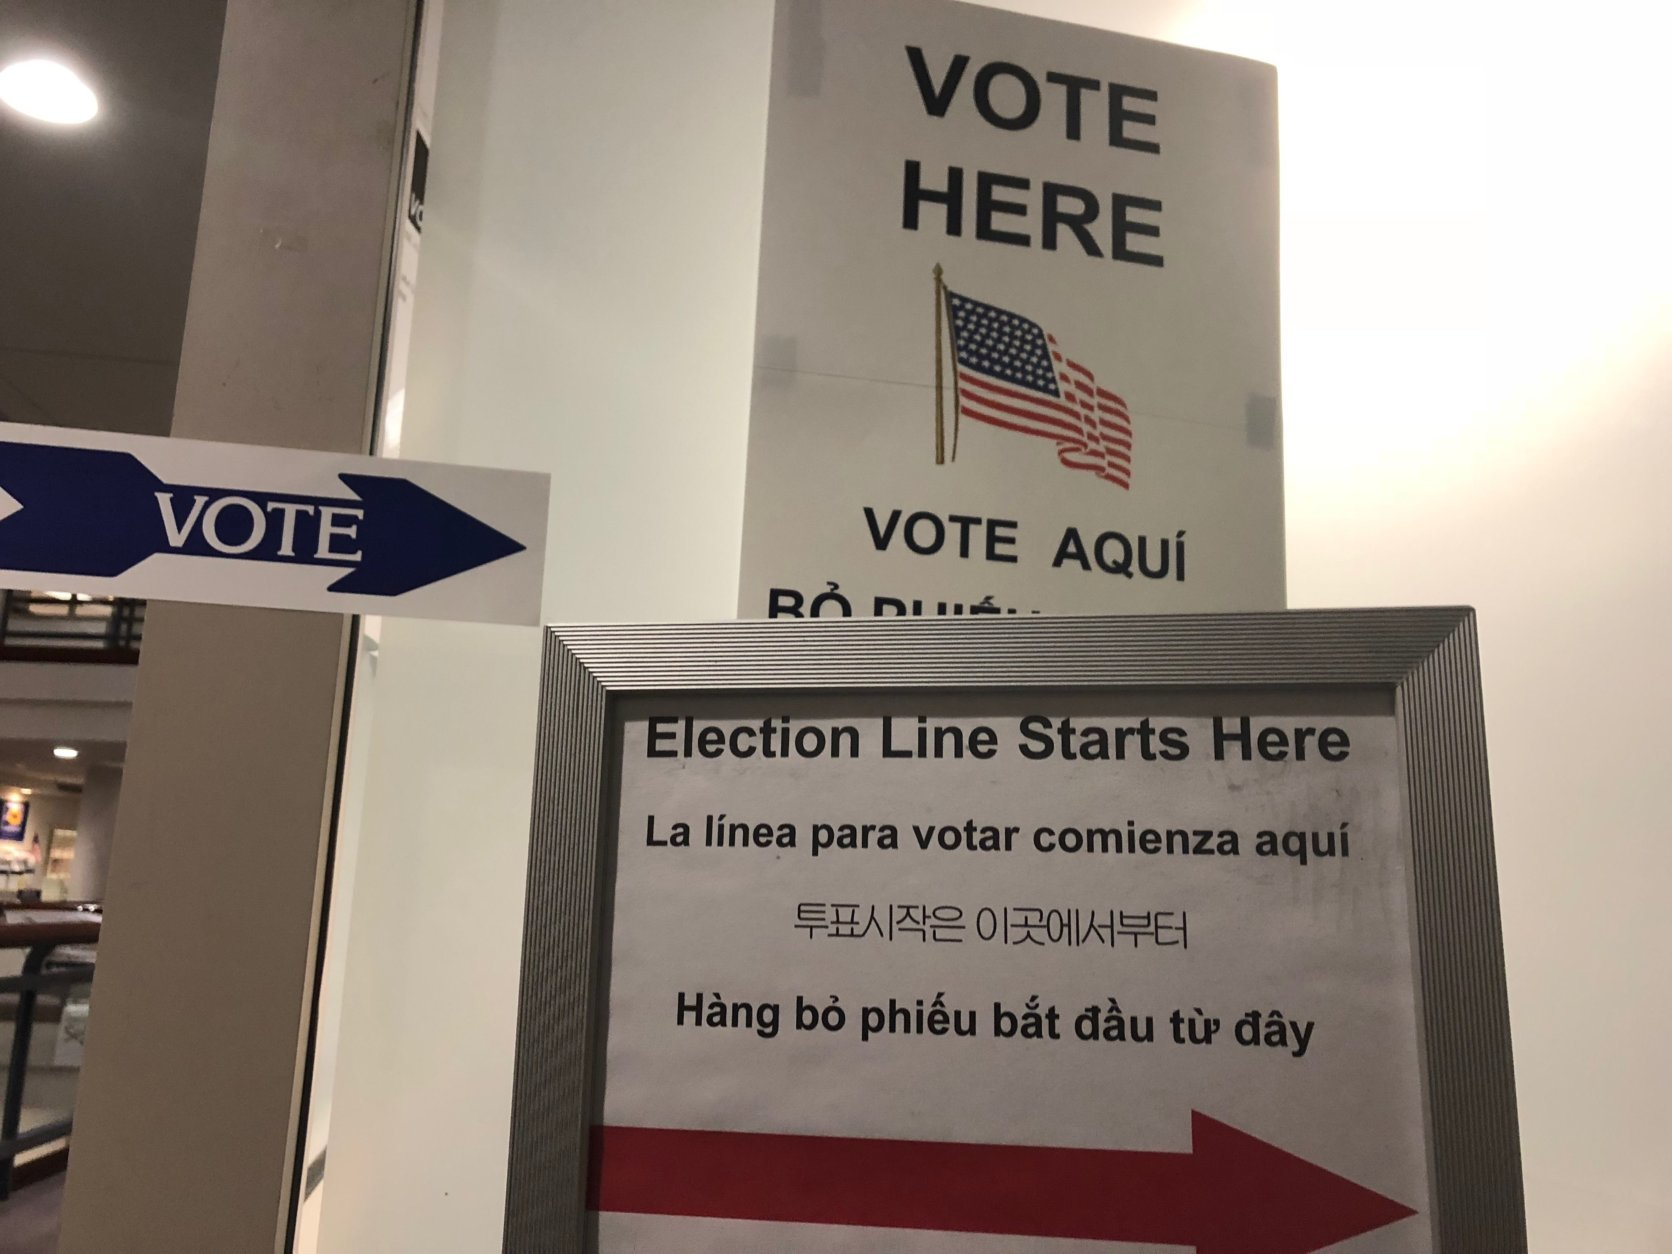 Voters have until Jun. 5 to request a mail-in absentee ballot, and through Jun. 9 to vote in-person absentee if they have one of a number of qualifying reasons such as travel, a long workday and commute, or other obligations on election day when polls are open from 6 a.m. to 7 p.m. (WTOP/Max Smith)